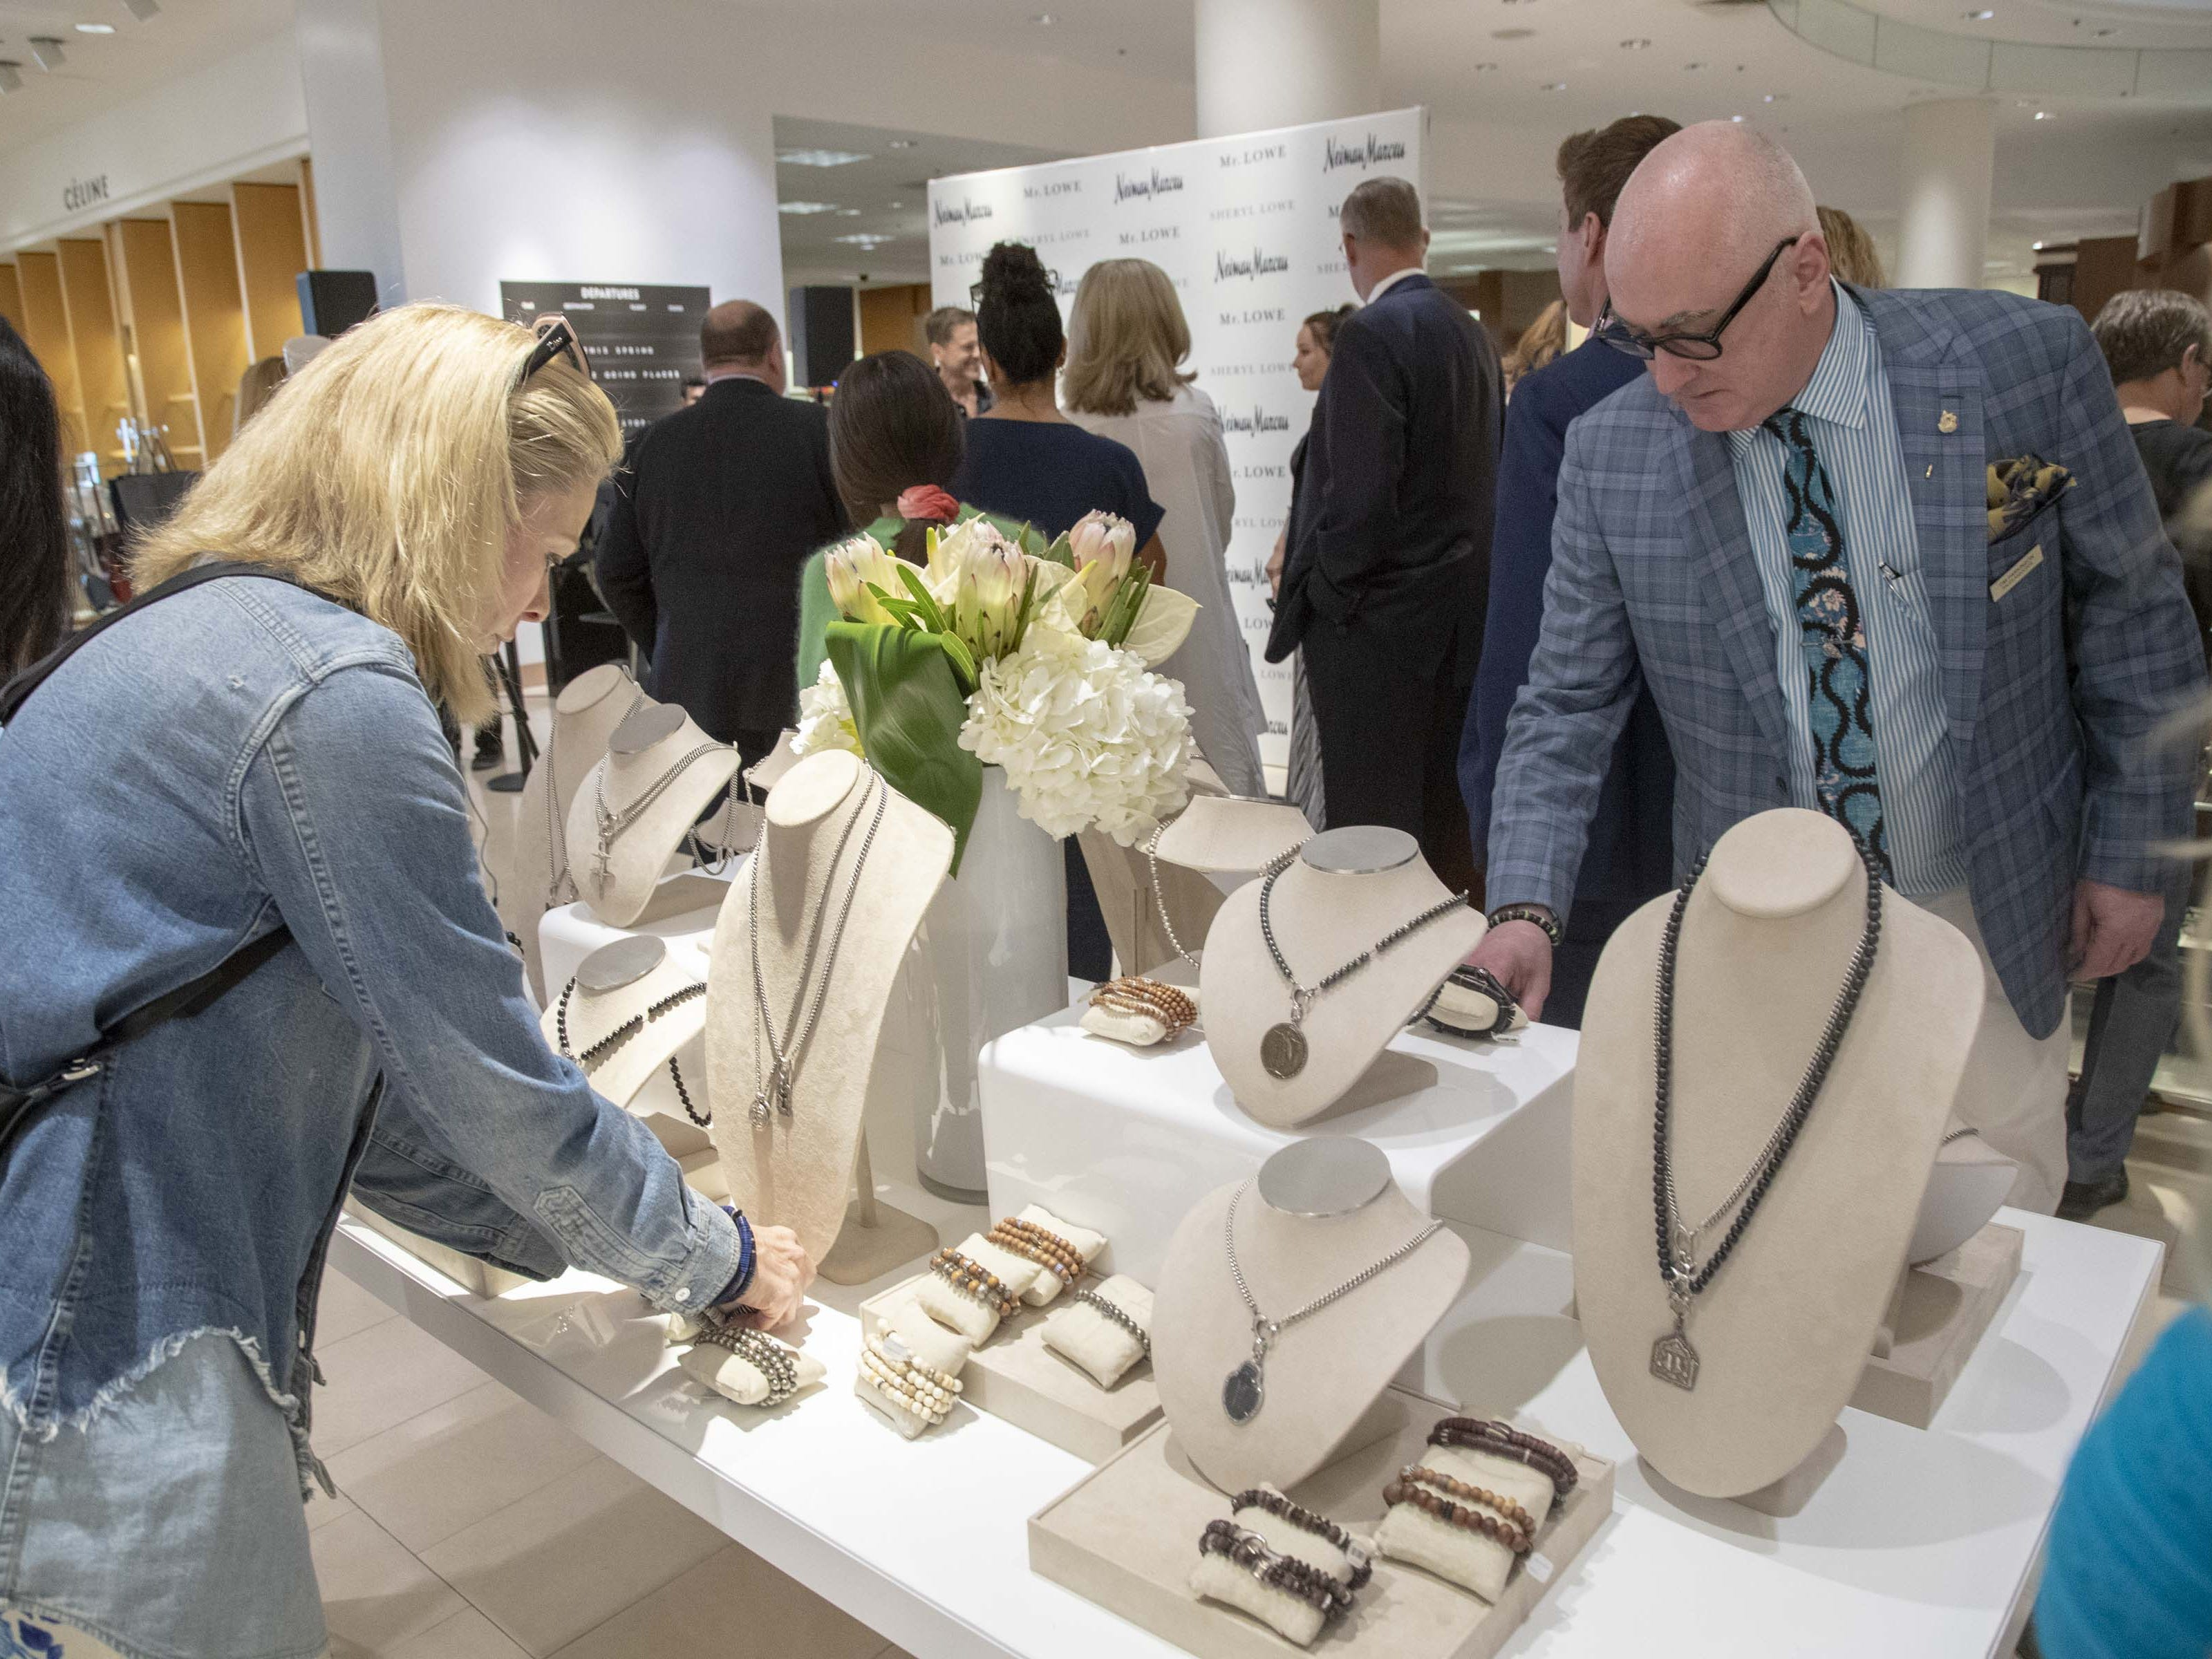 Fans look at actor Rob Lowe and his wife Sheryl Lowe's new jewelry collection at Scottsdale Fashion Square on March 28, 2019.